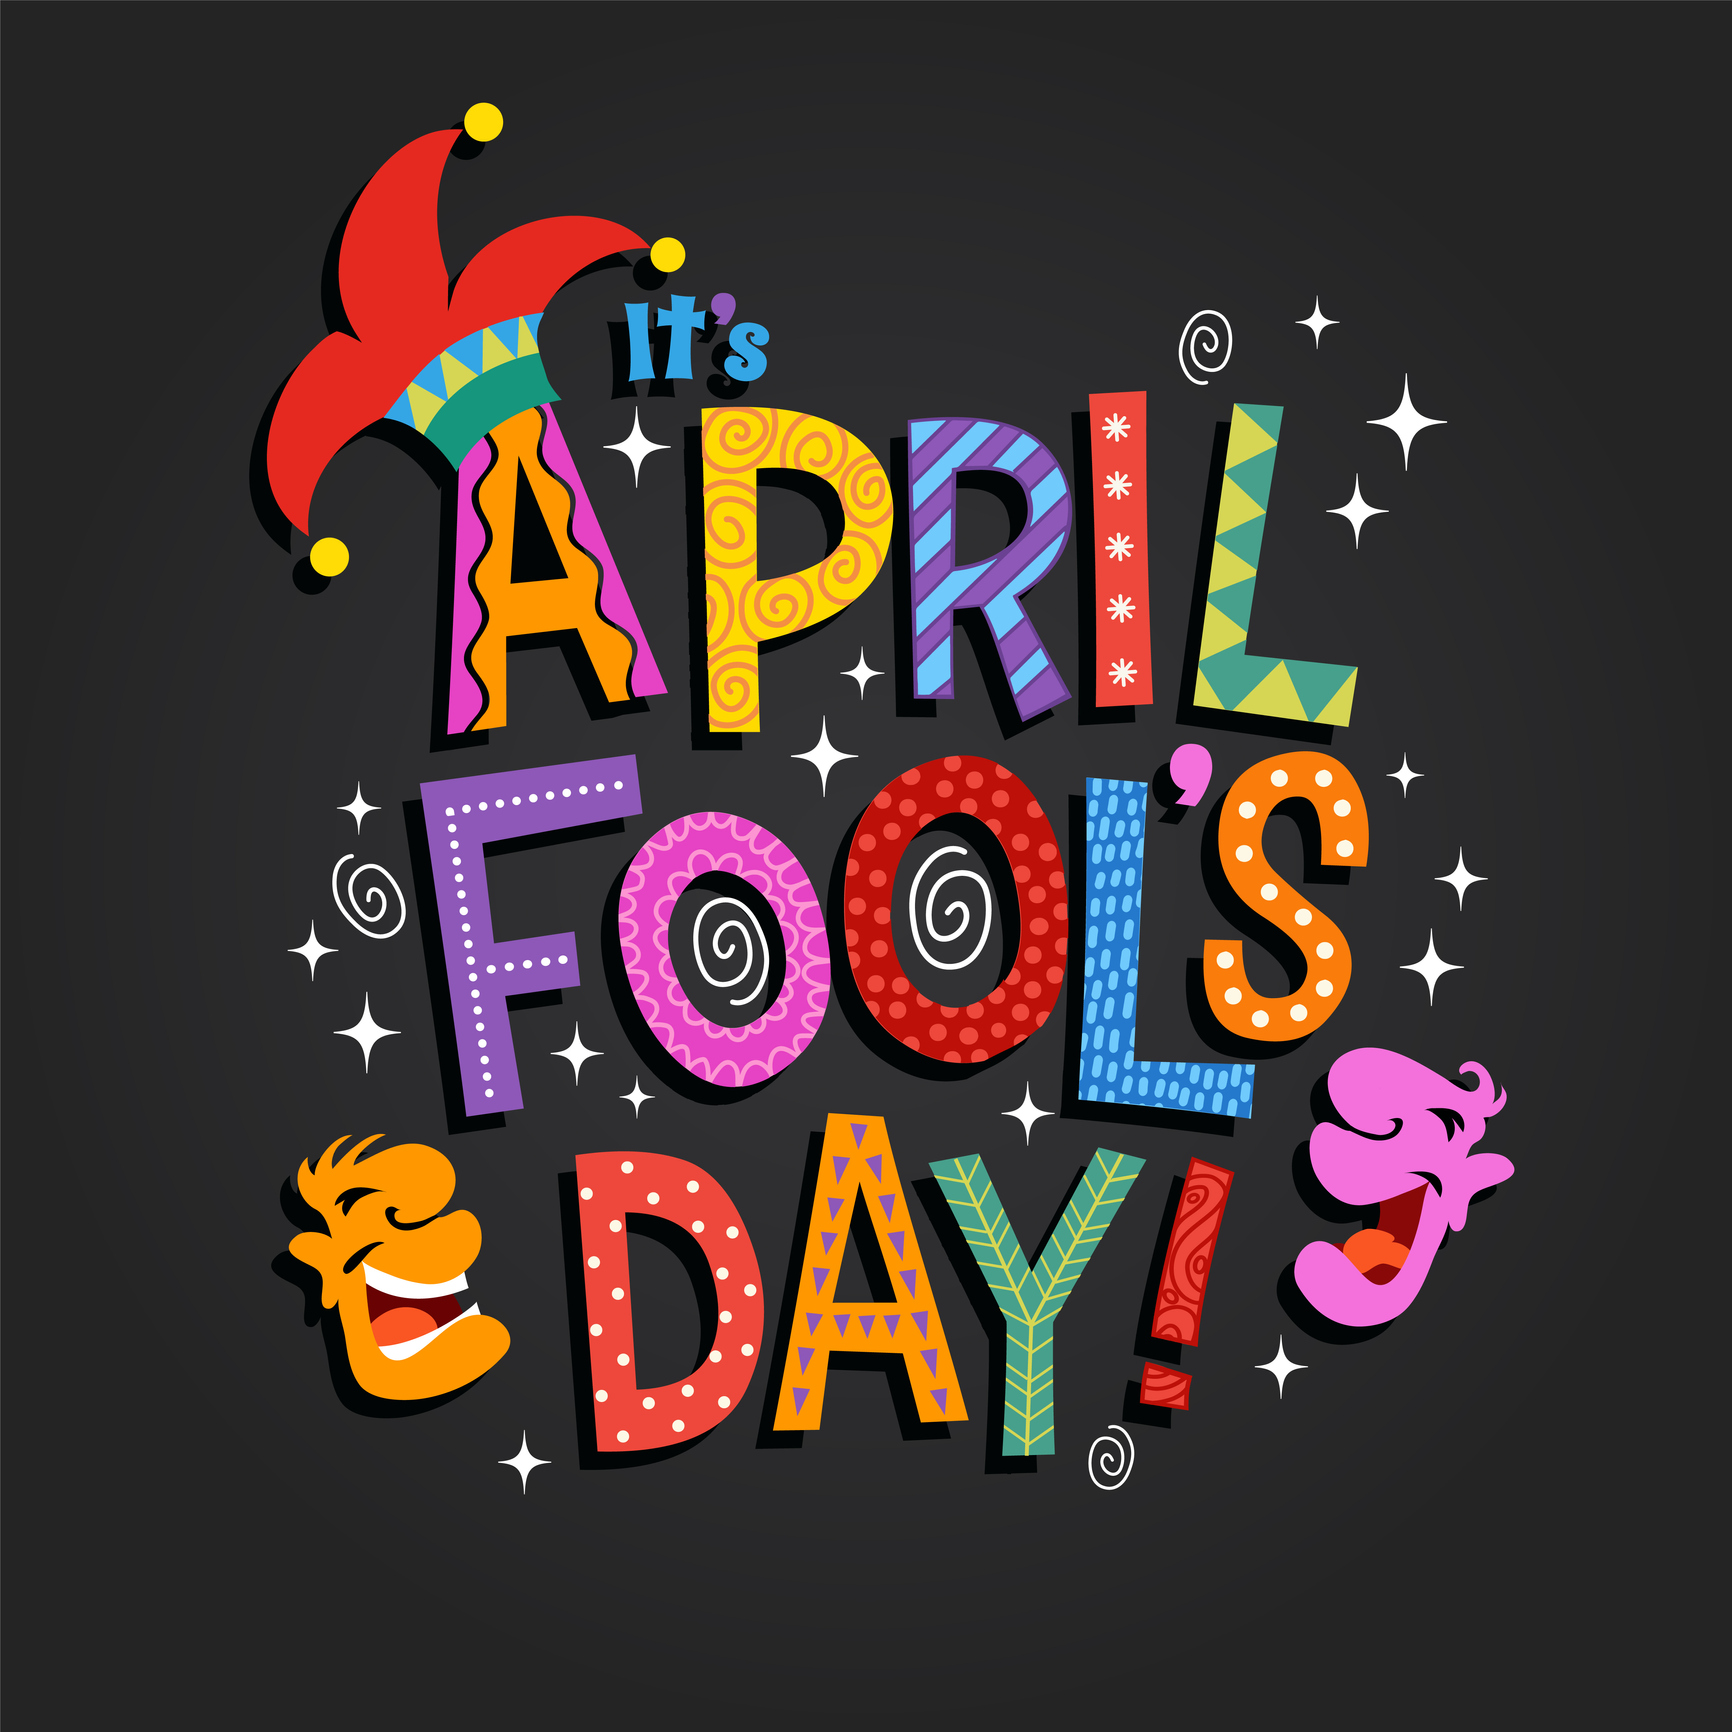 Do You Like April Fools Day?